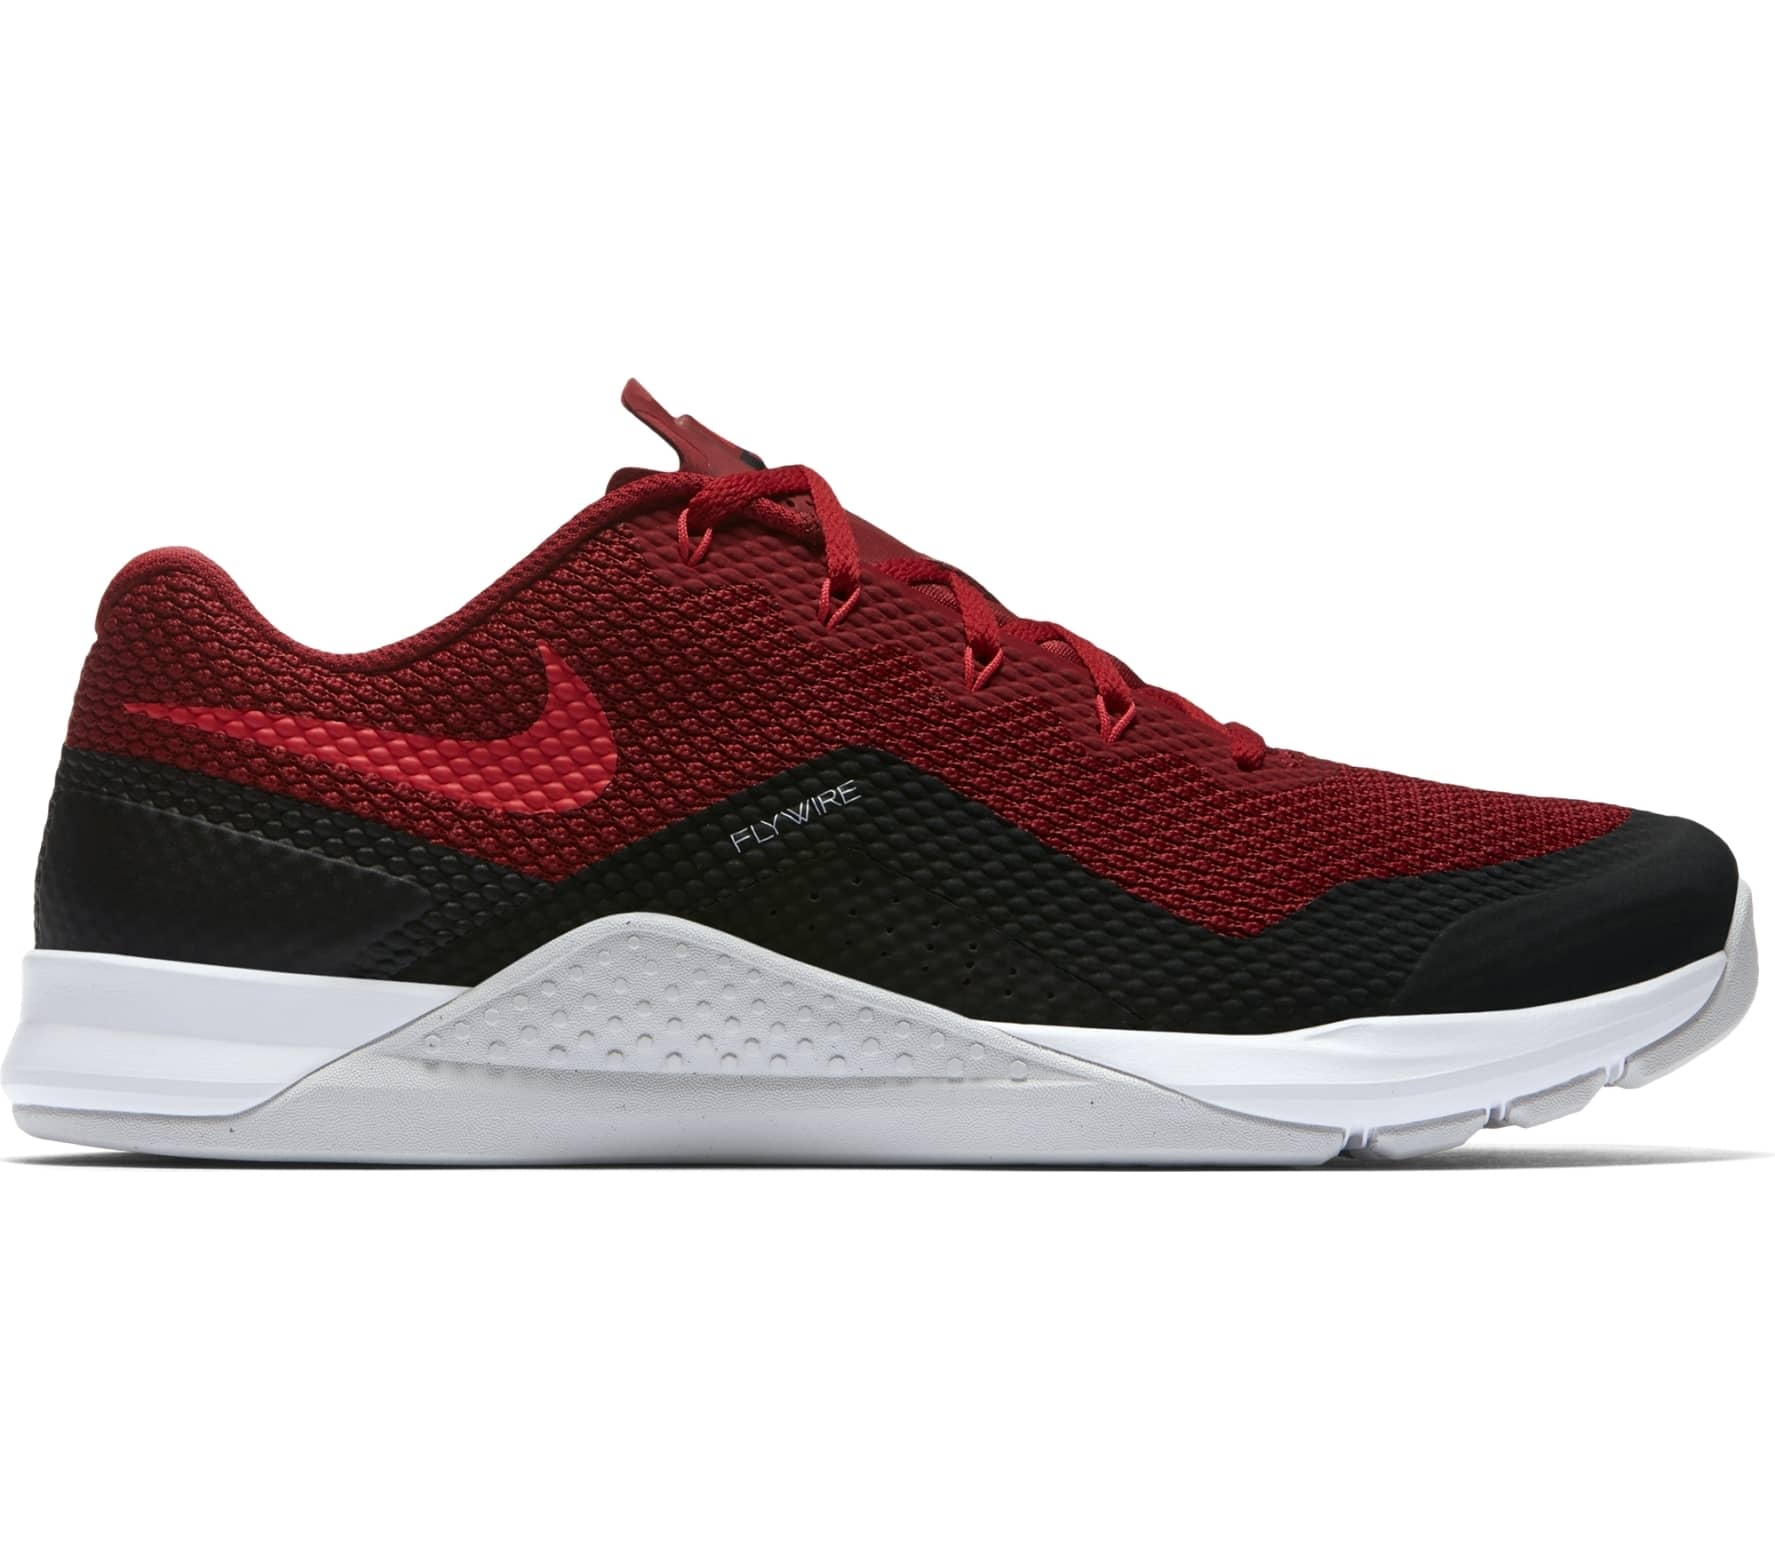 ce28f58e4db Nike Metcon Repper DSX Men red - buy it at the Keller Sports online shop